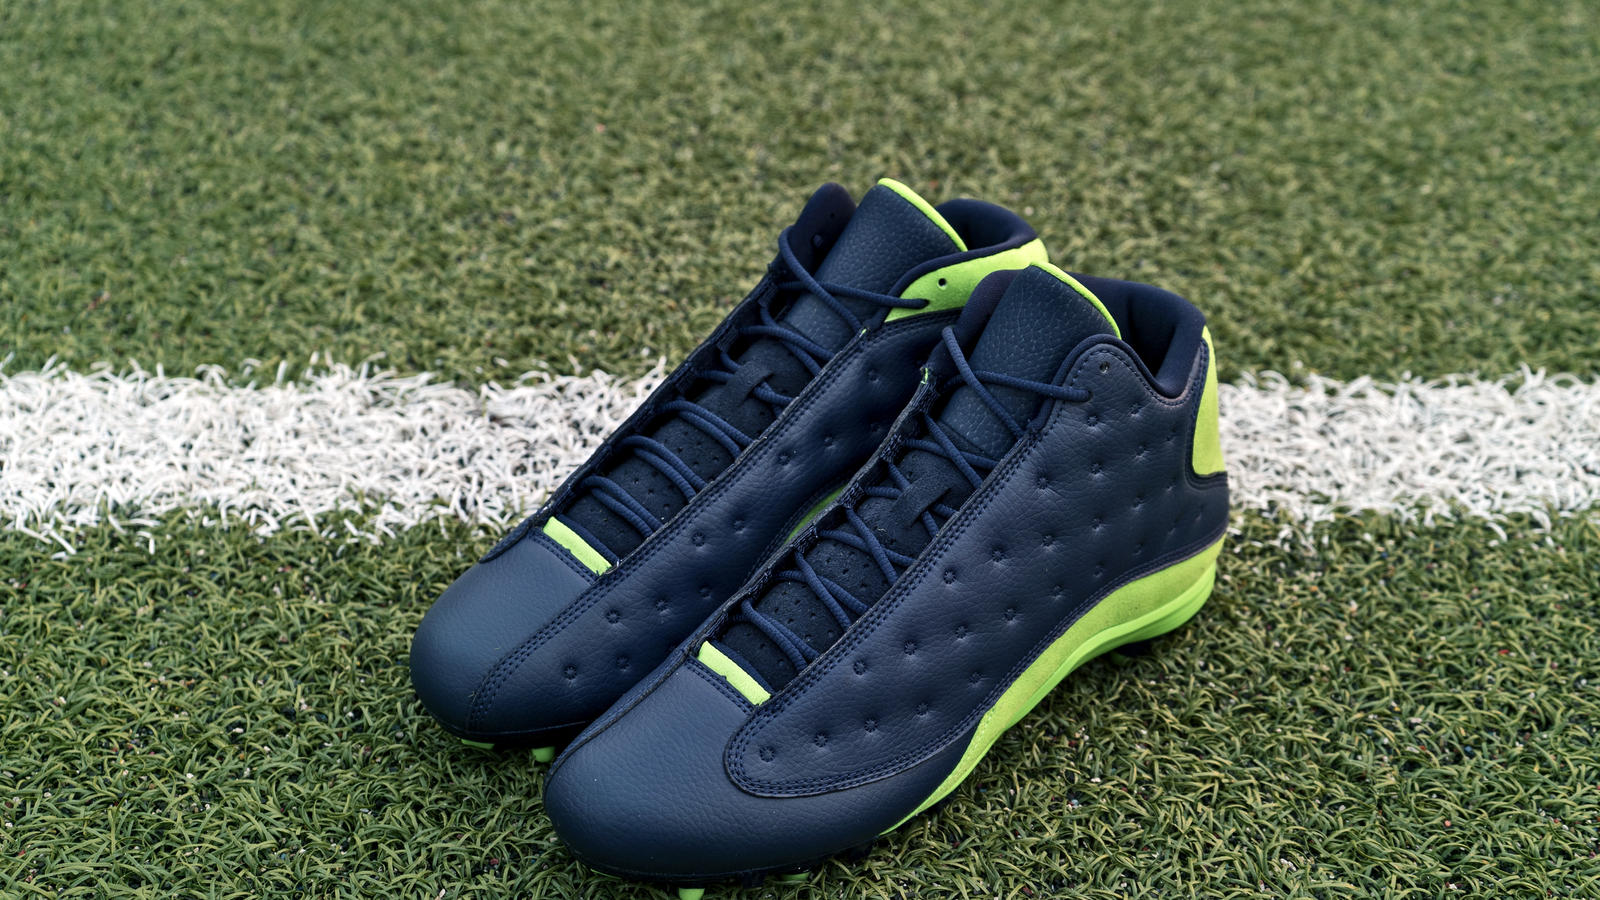 Jordan Brand's Football Roster Debuts New Air Jordan XIII PE Cleats 14